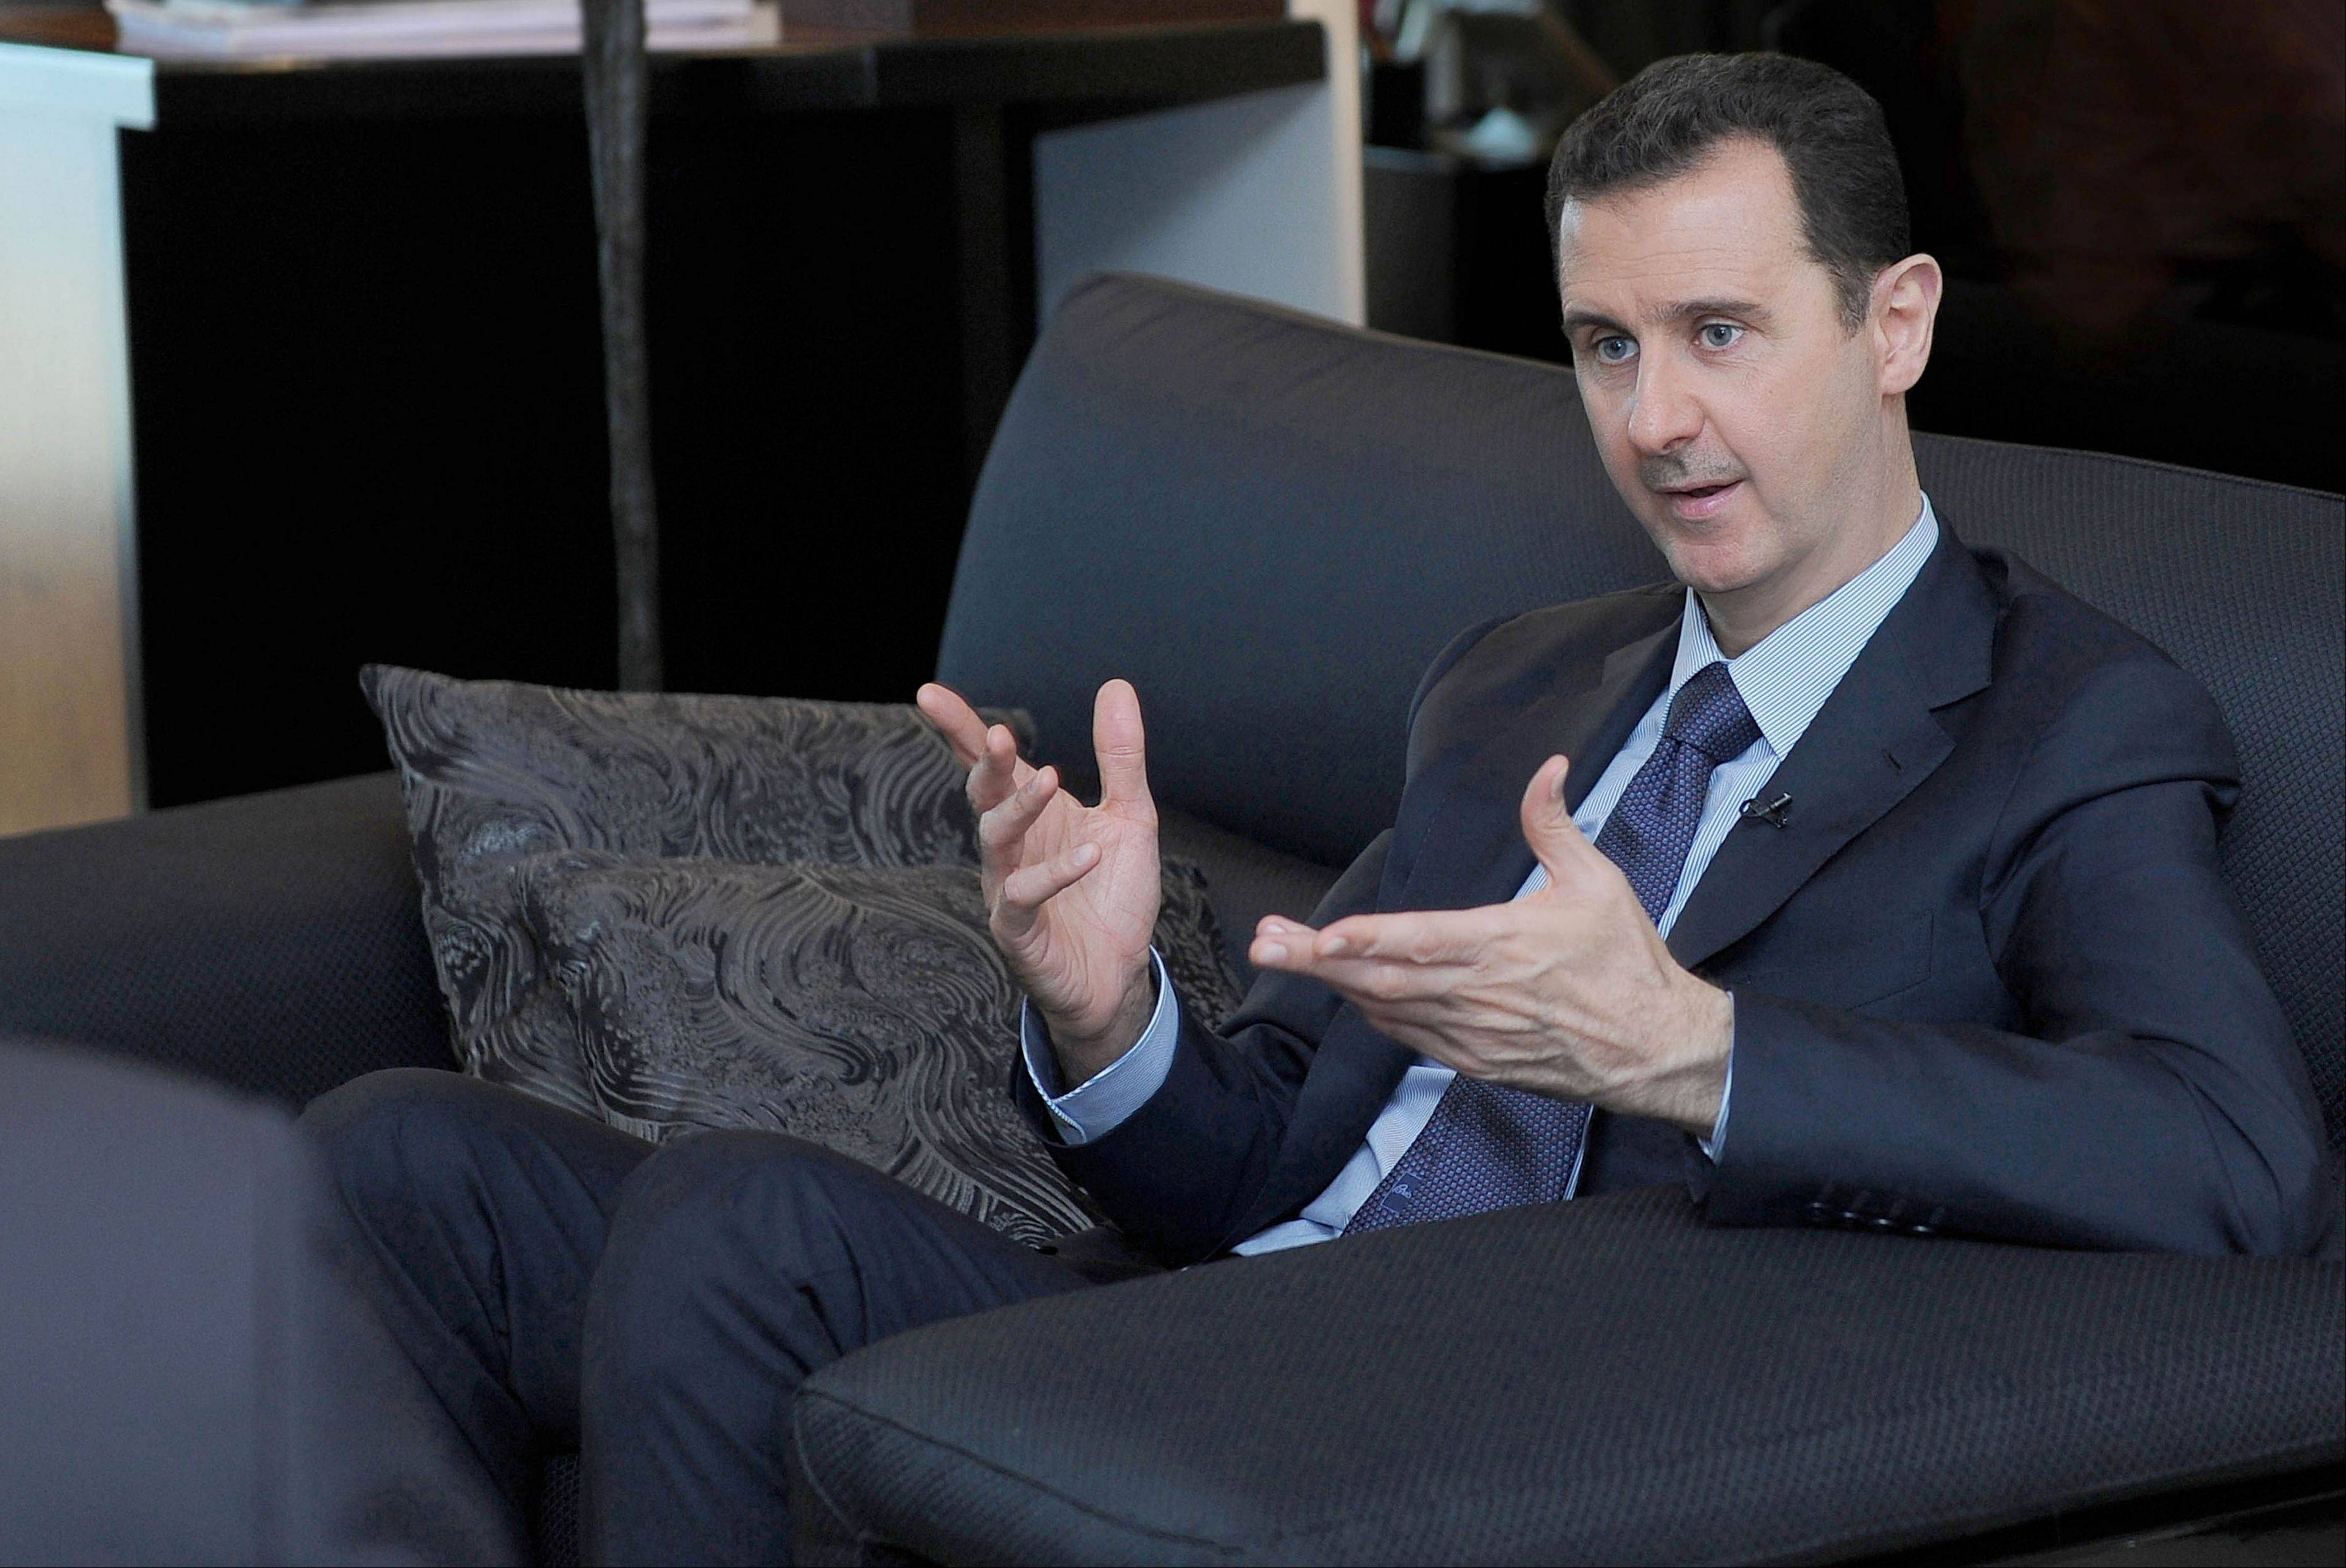 Syrian President Bashar Assad says his government has agreed to surrender its chemical weapons in response to Russia�s initiative and not because of the U.S. threat of attack.